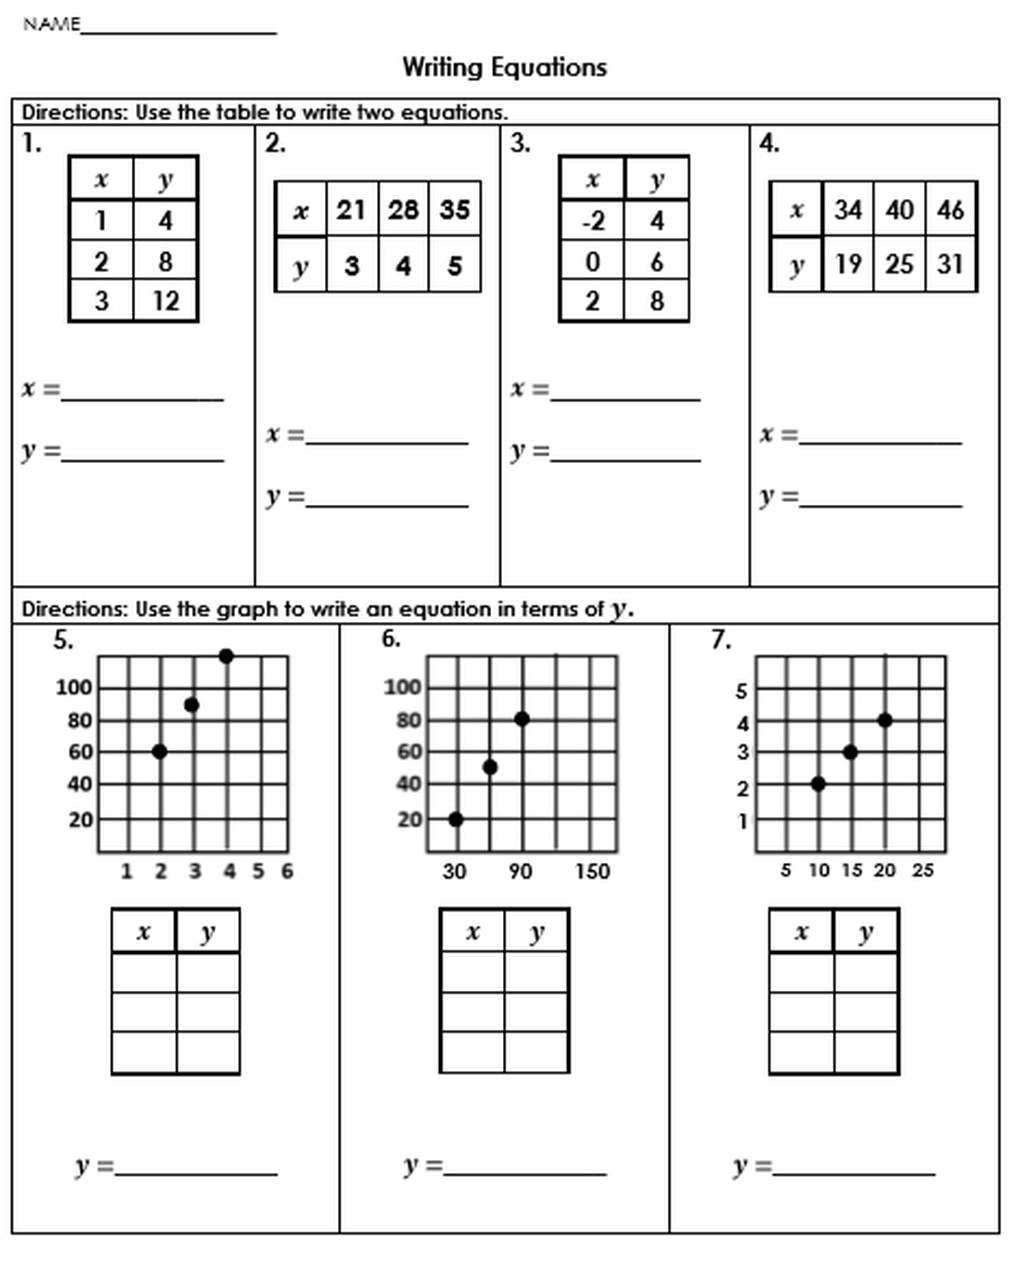 Writing Equations From Tables Worksheet Writing Equations with Tables Graphs and Word Problems